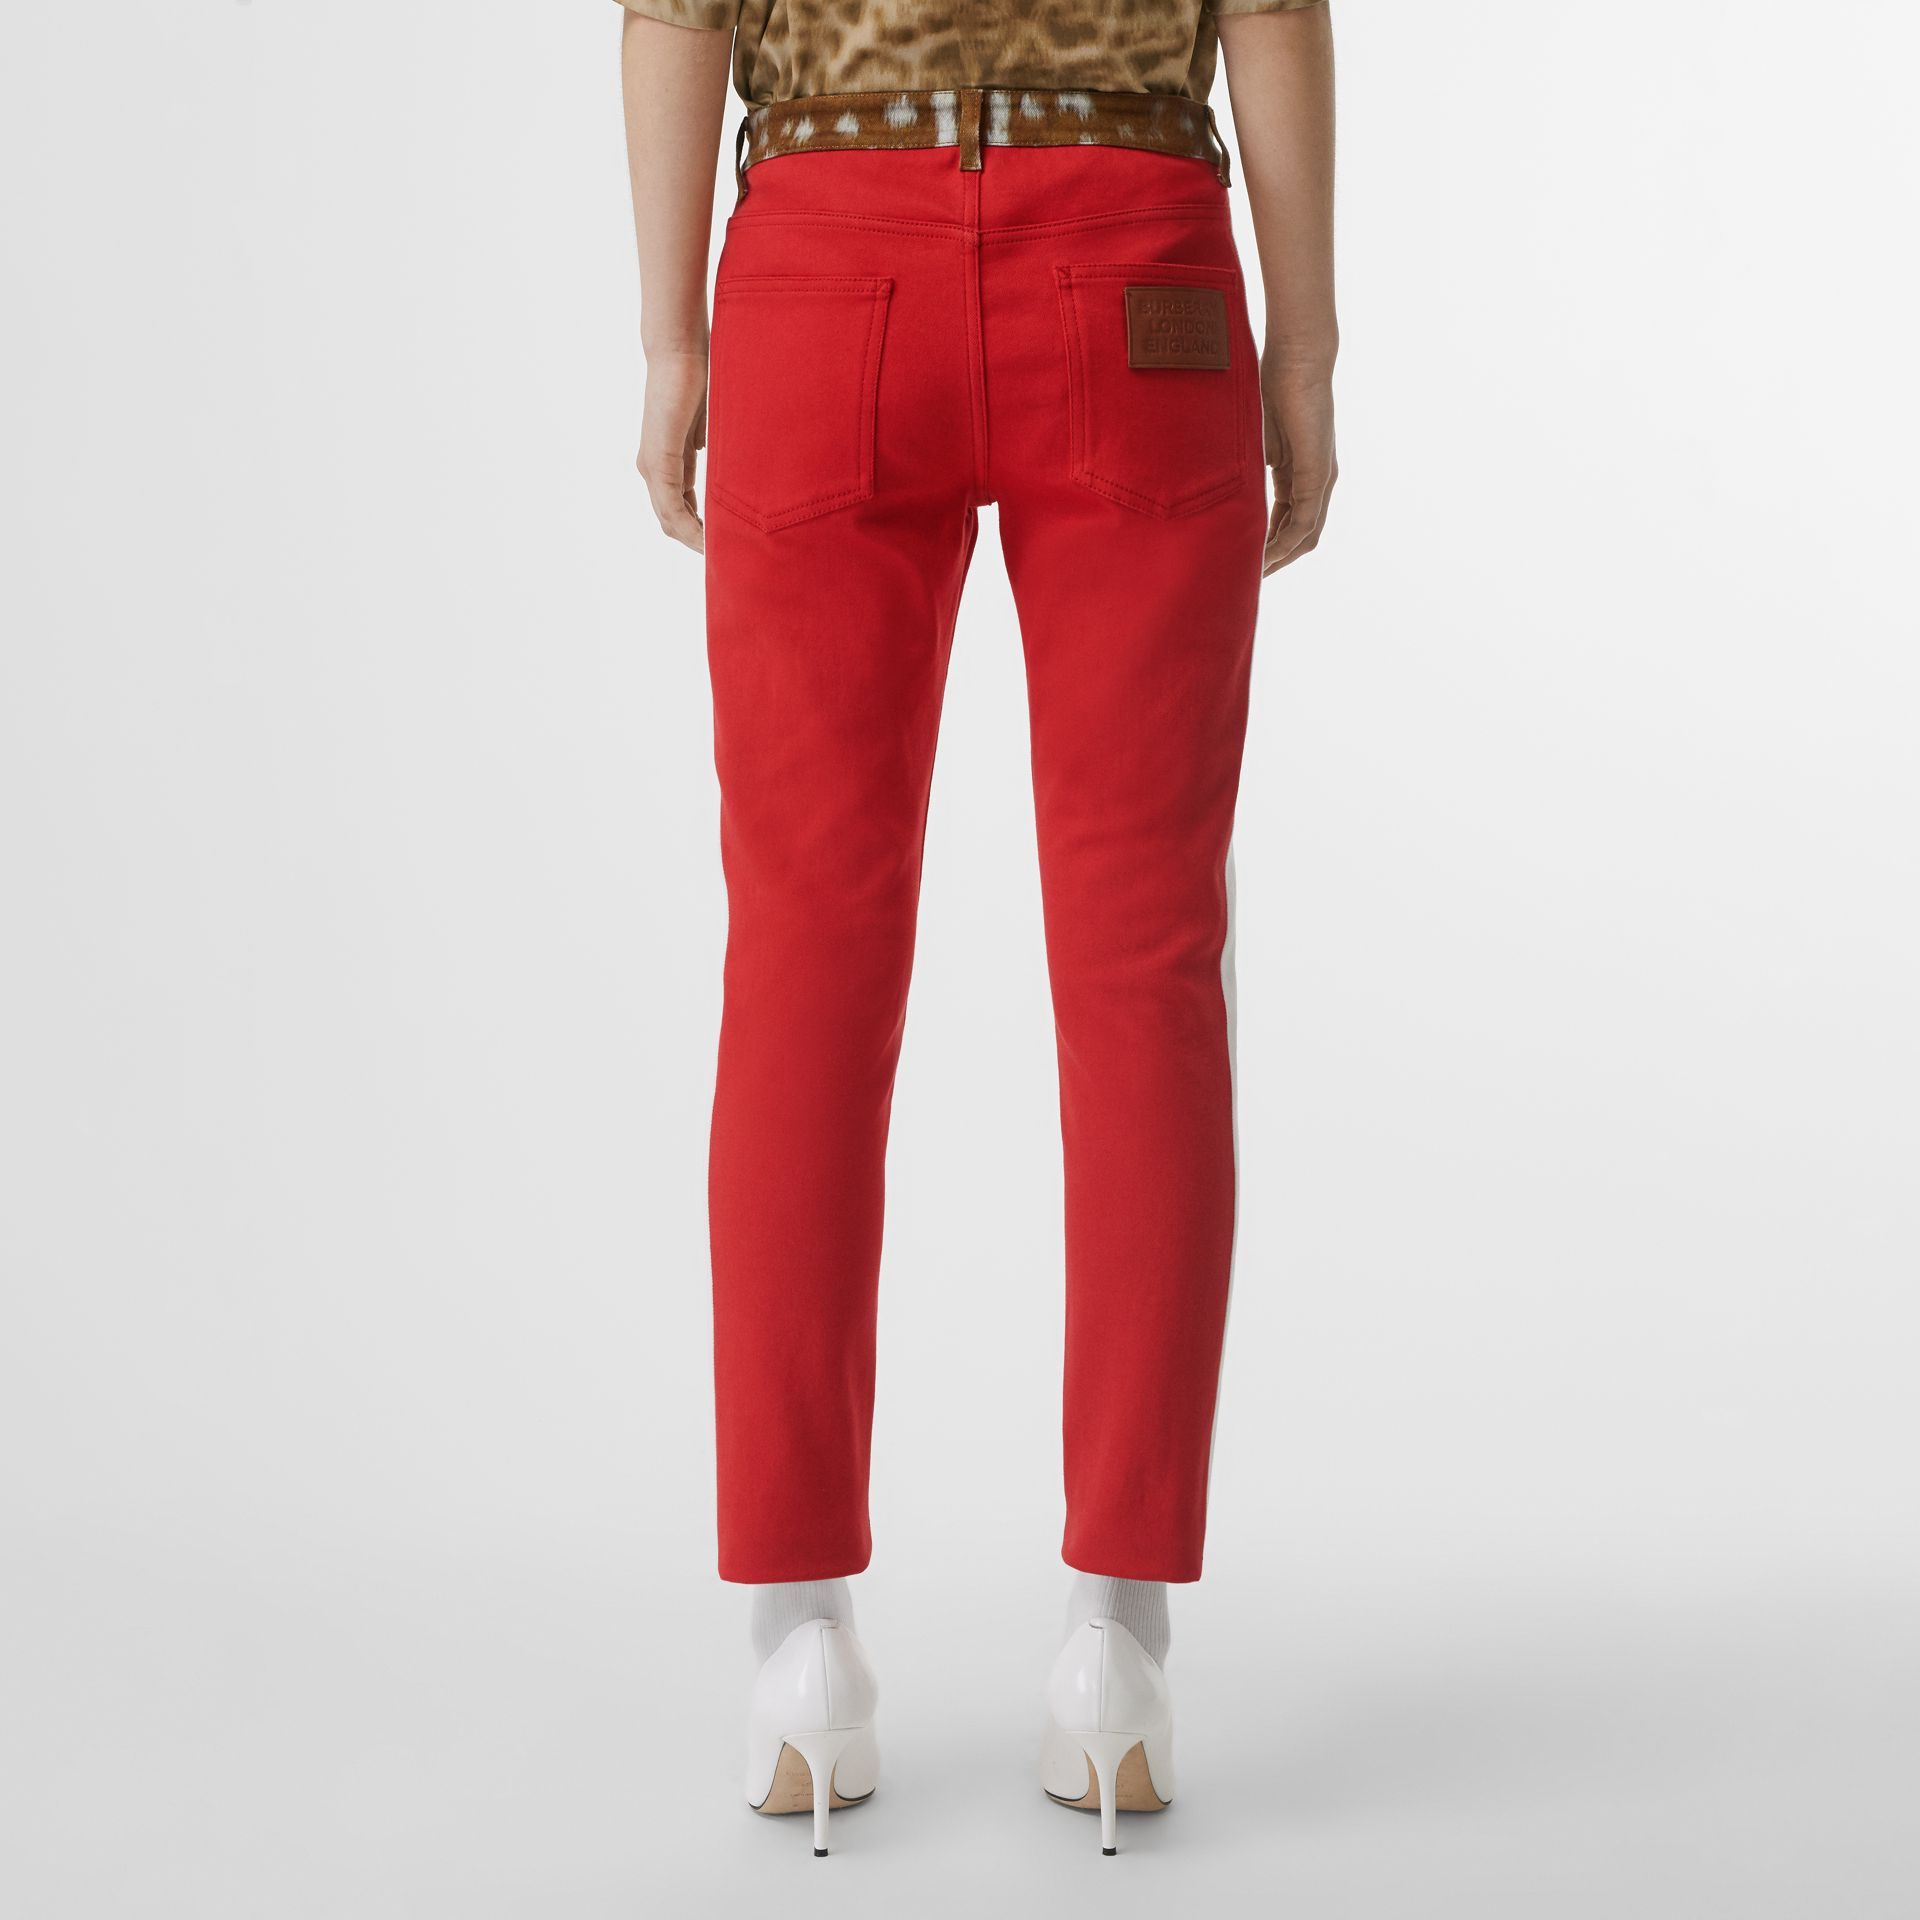 Straight Fit Deer Print Trim Japanese Denim Jeans in Bright Red - Women | Burberry - gallery image 2